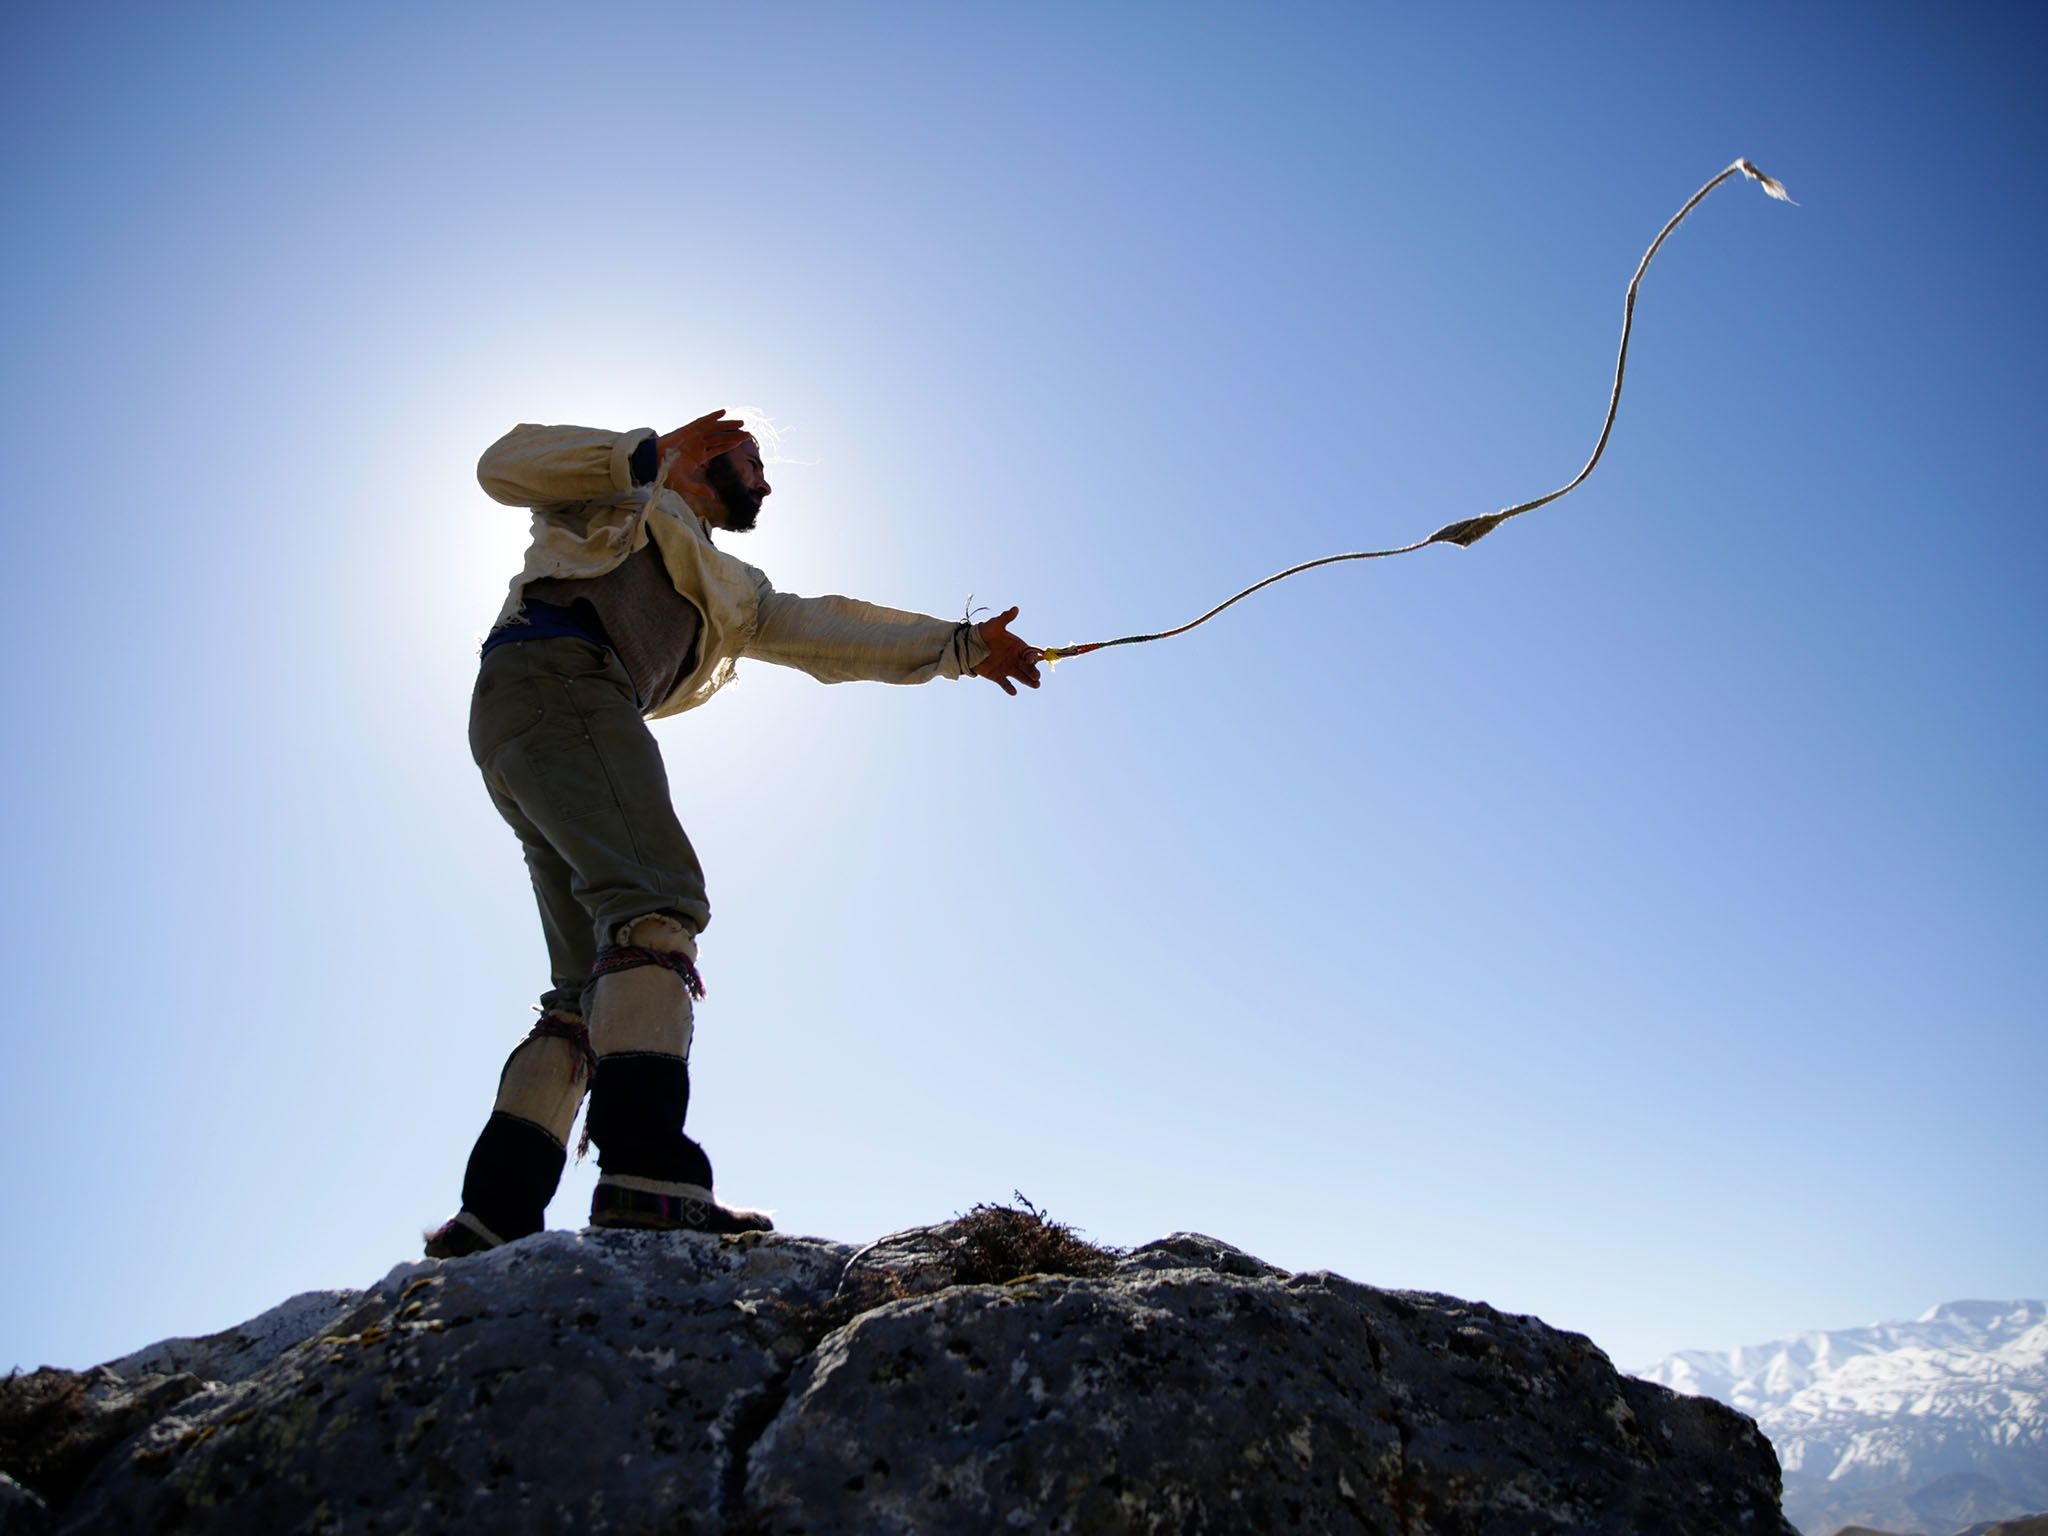 Mustang, Nepal: Hazen practicing slingshot with the sun behind him. This image is from Primal... [Photo of the day - ژانویه 2016]